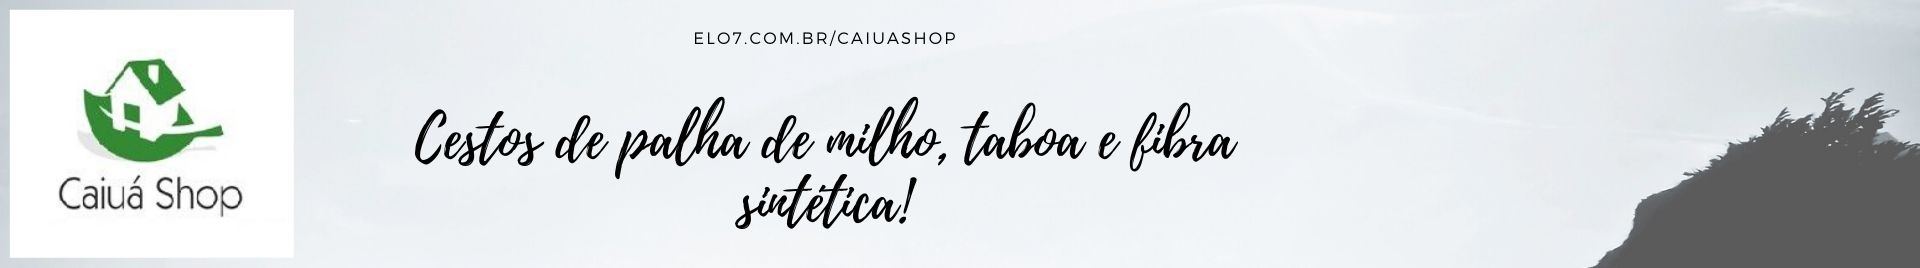 CAIU SHOP